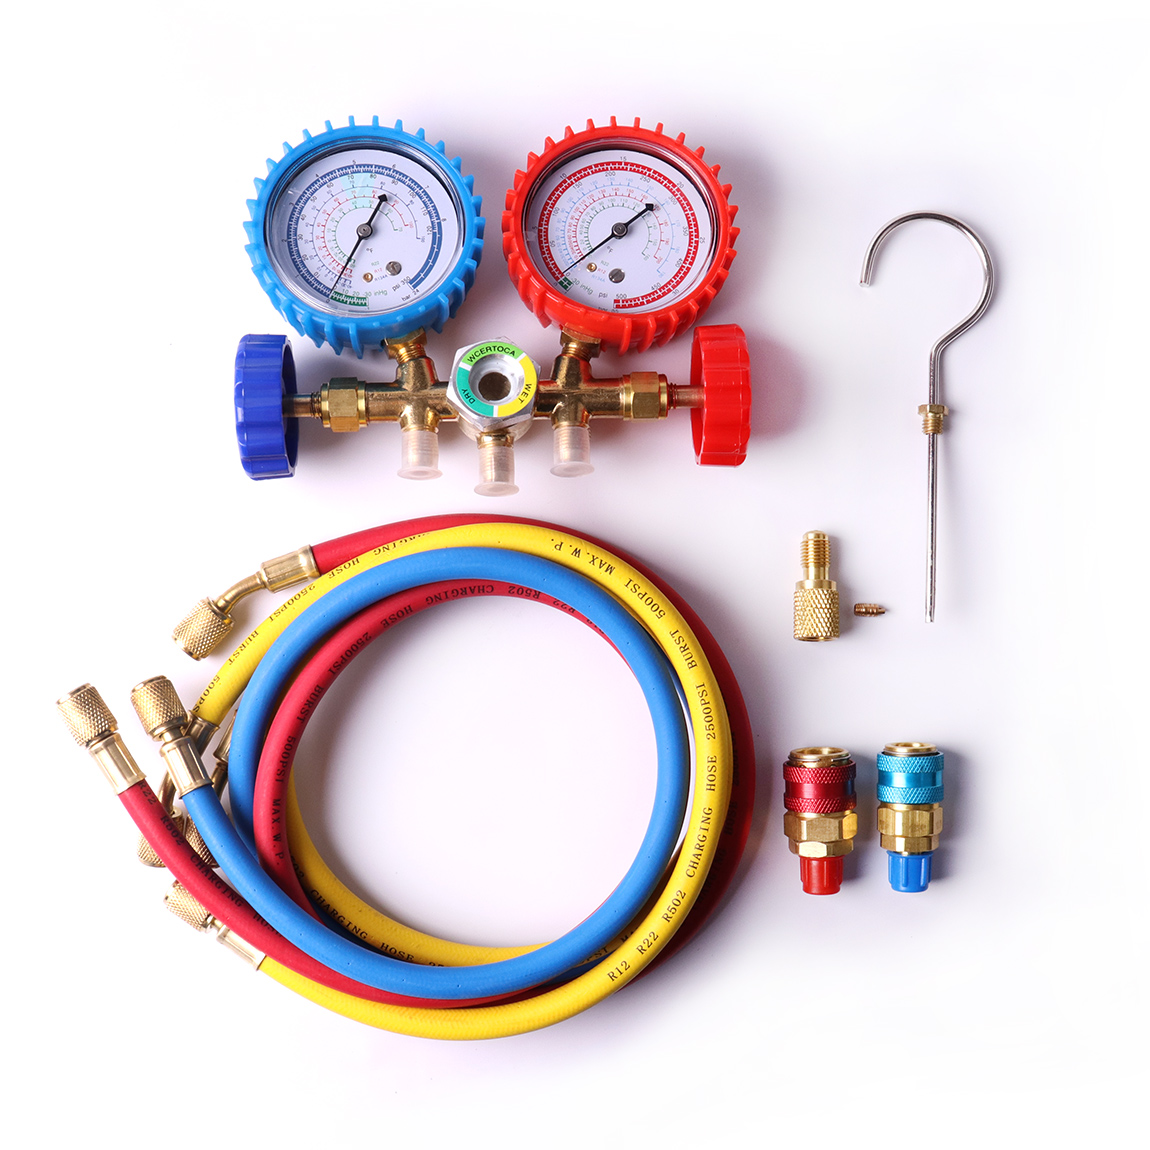 New Air Conditioning Red Blue H-L R134 Quick Couplers R12 R22 R502 and R134a A/C Manifold Brass Gauge Set with 3 Charging Hoses myrope r12 blue